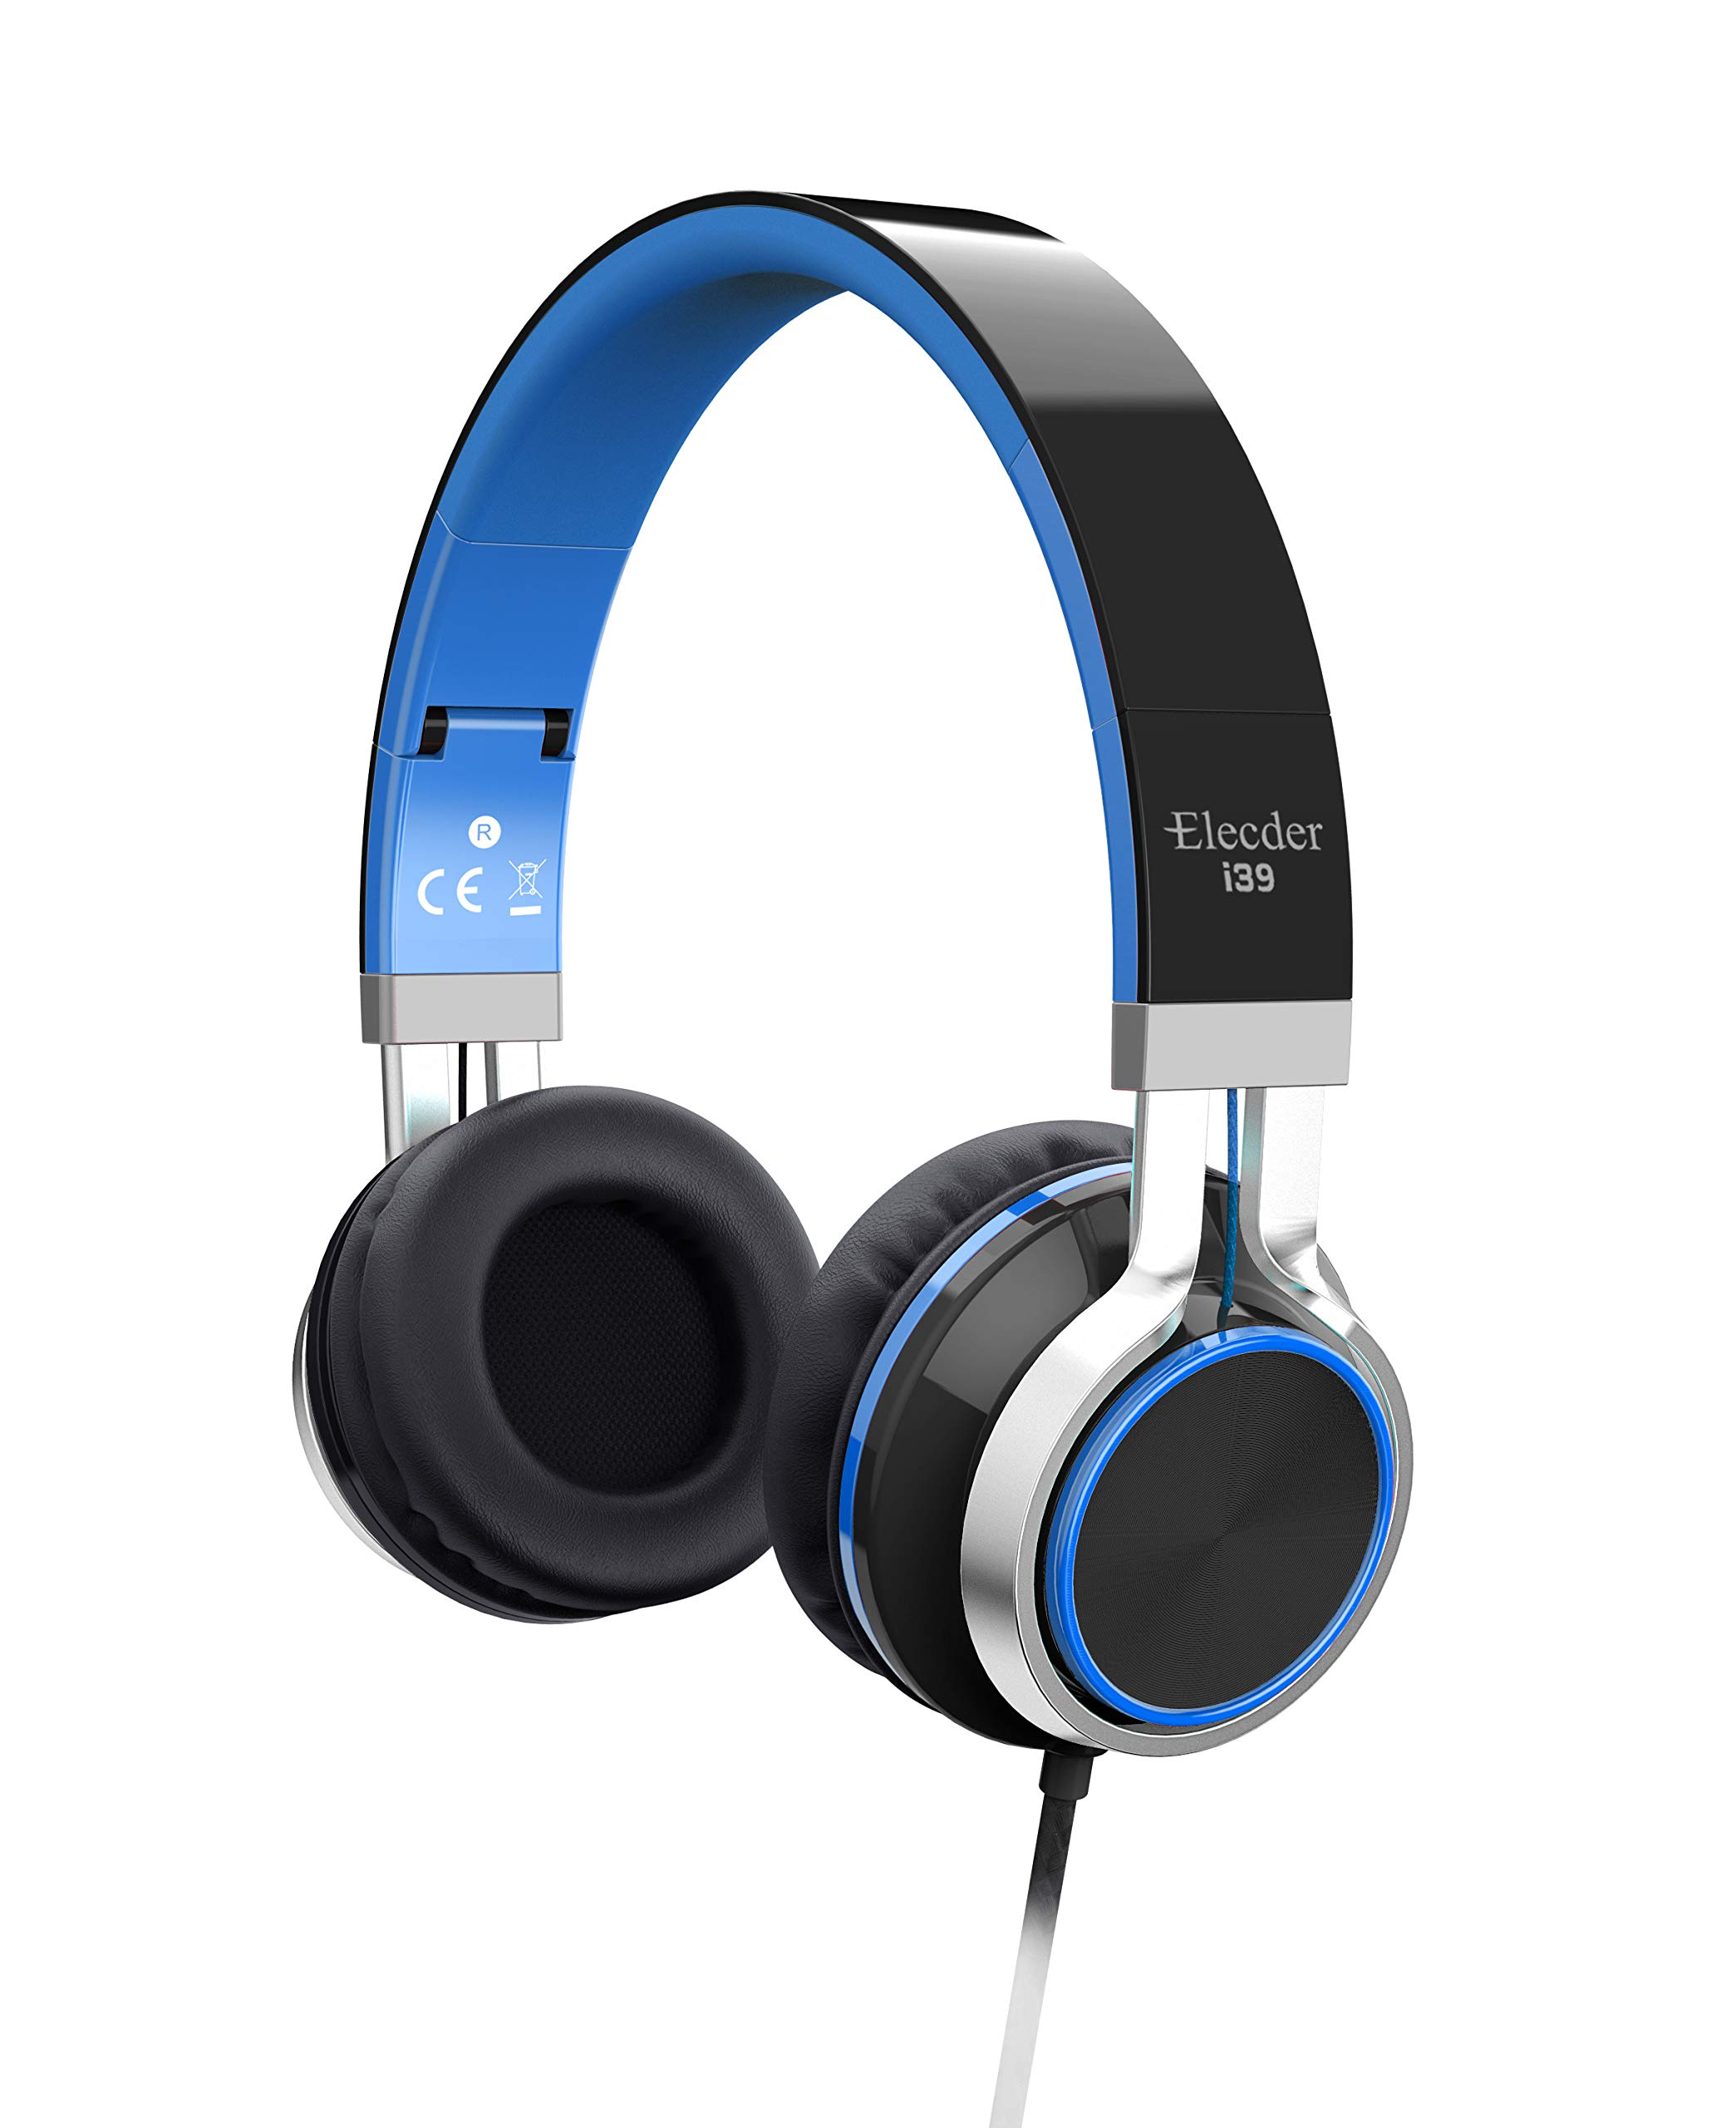 Elecder i39 Headphones with Microphone Foldable Lightweight Adjustable On Ear Headsets with 3.5mm Jack for iPad Cellphones Computer MP3/4 Kindle Airplane School Blue/Black